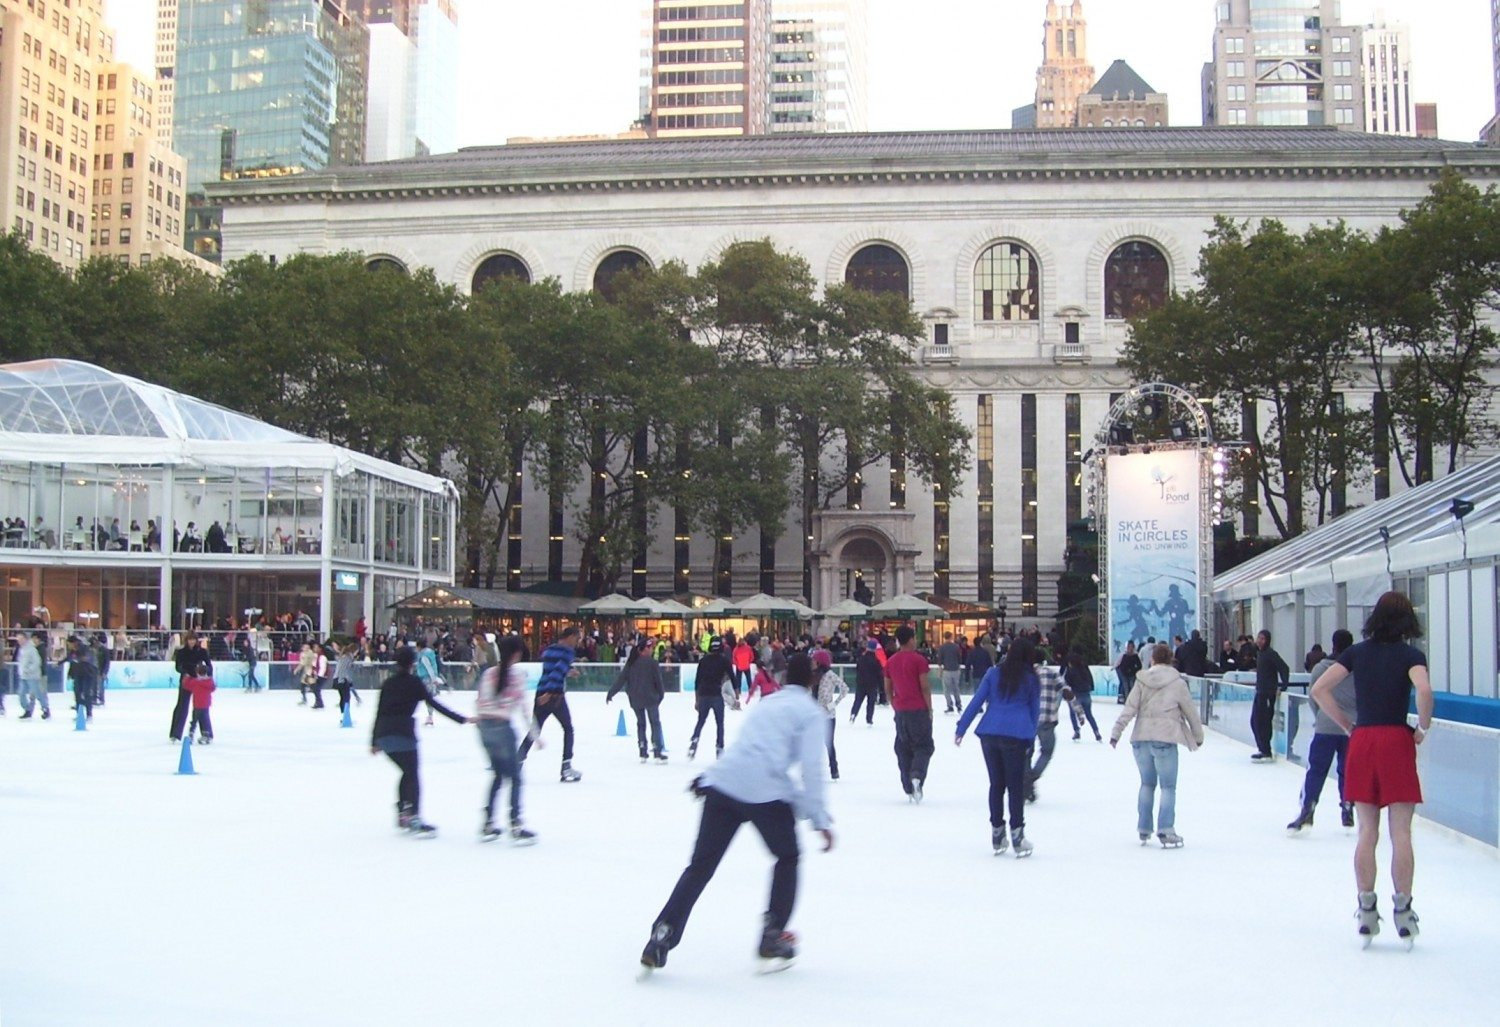 Winter Village at Bryant Park